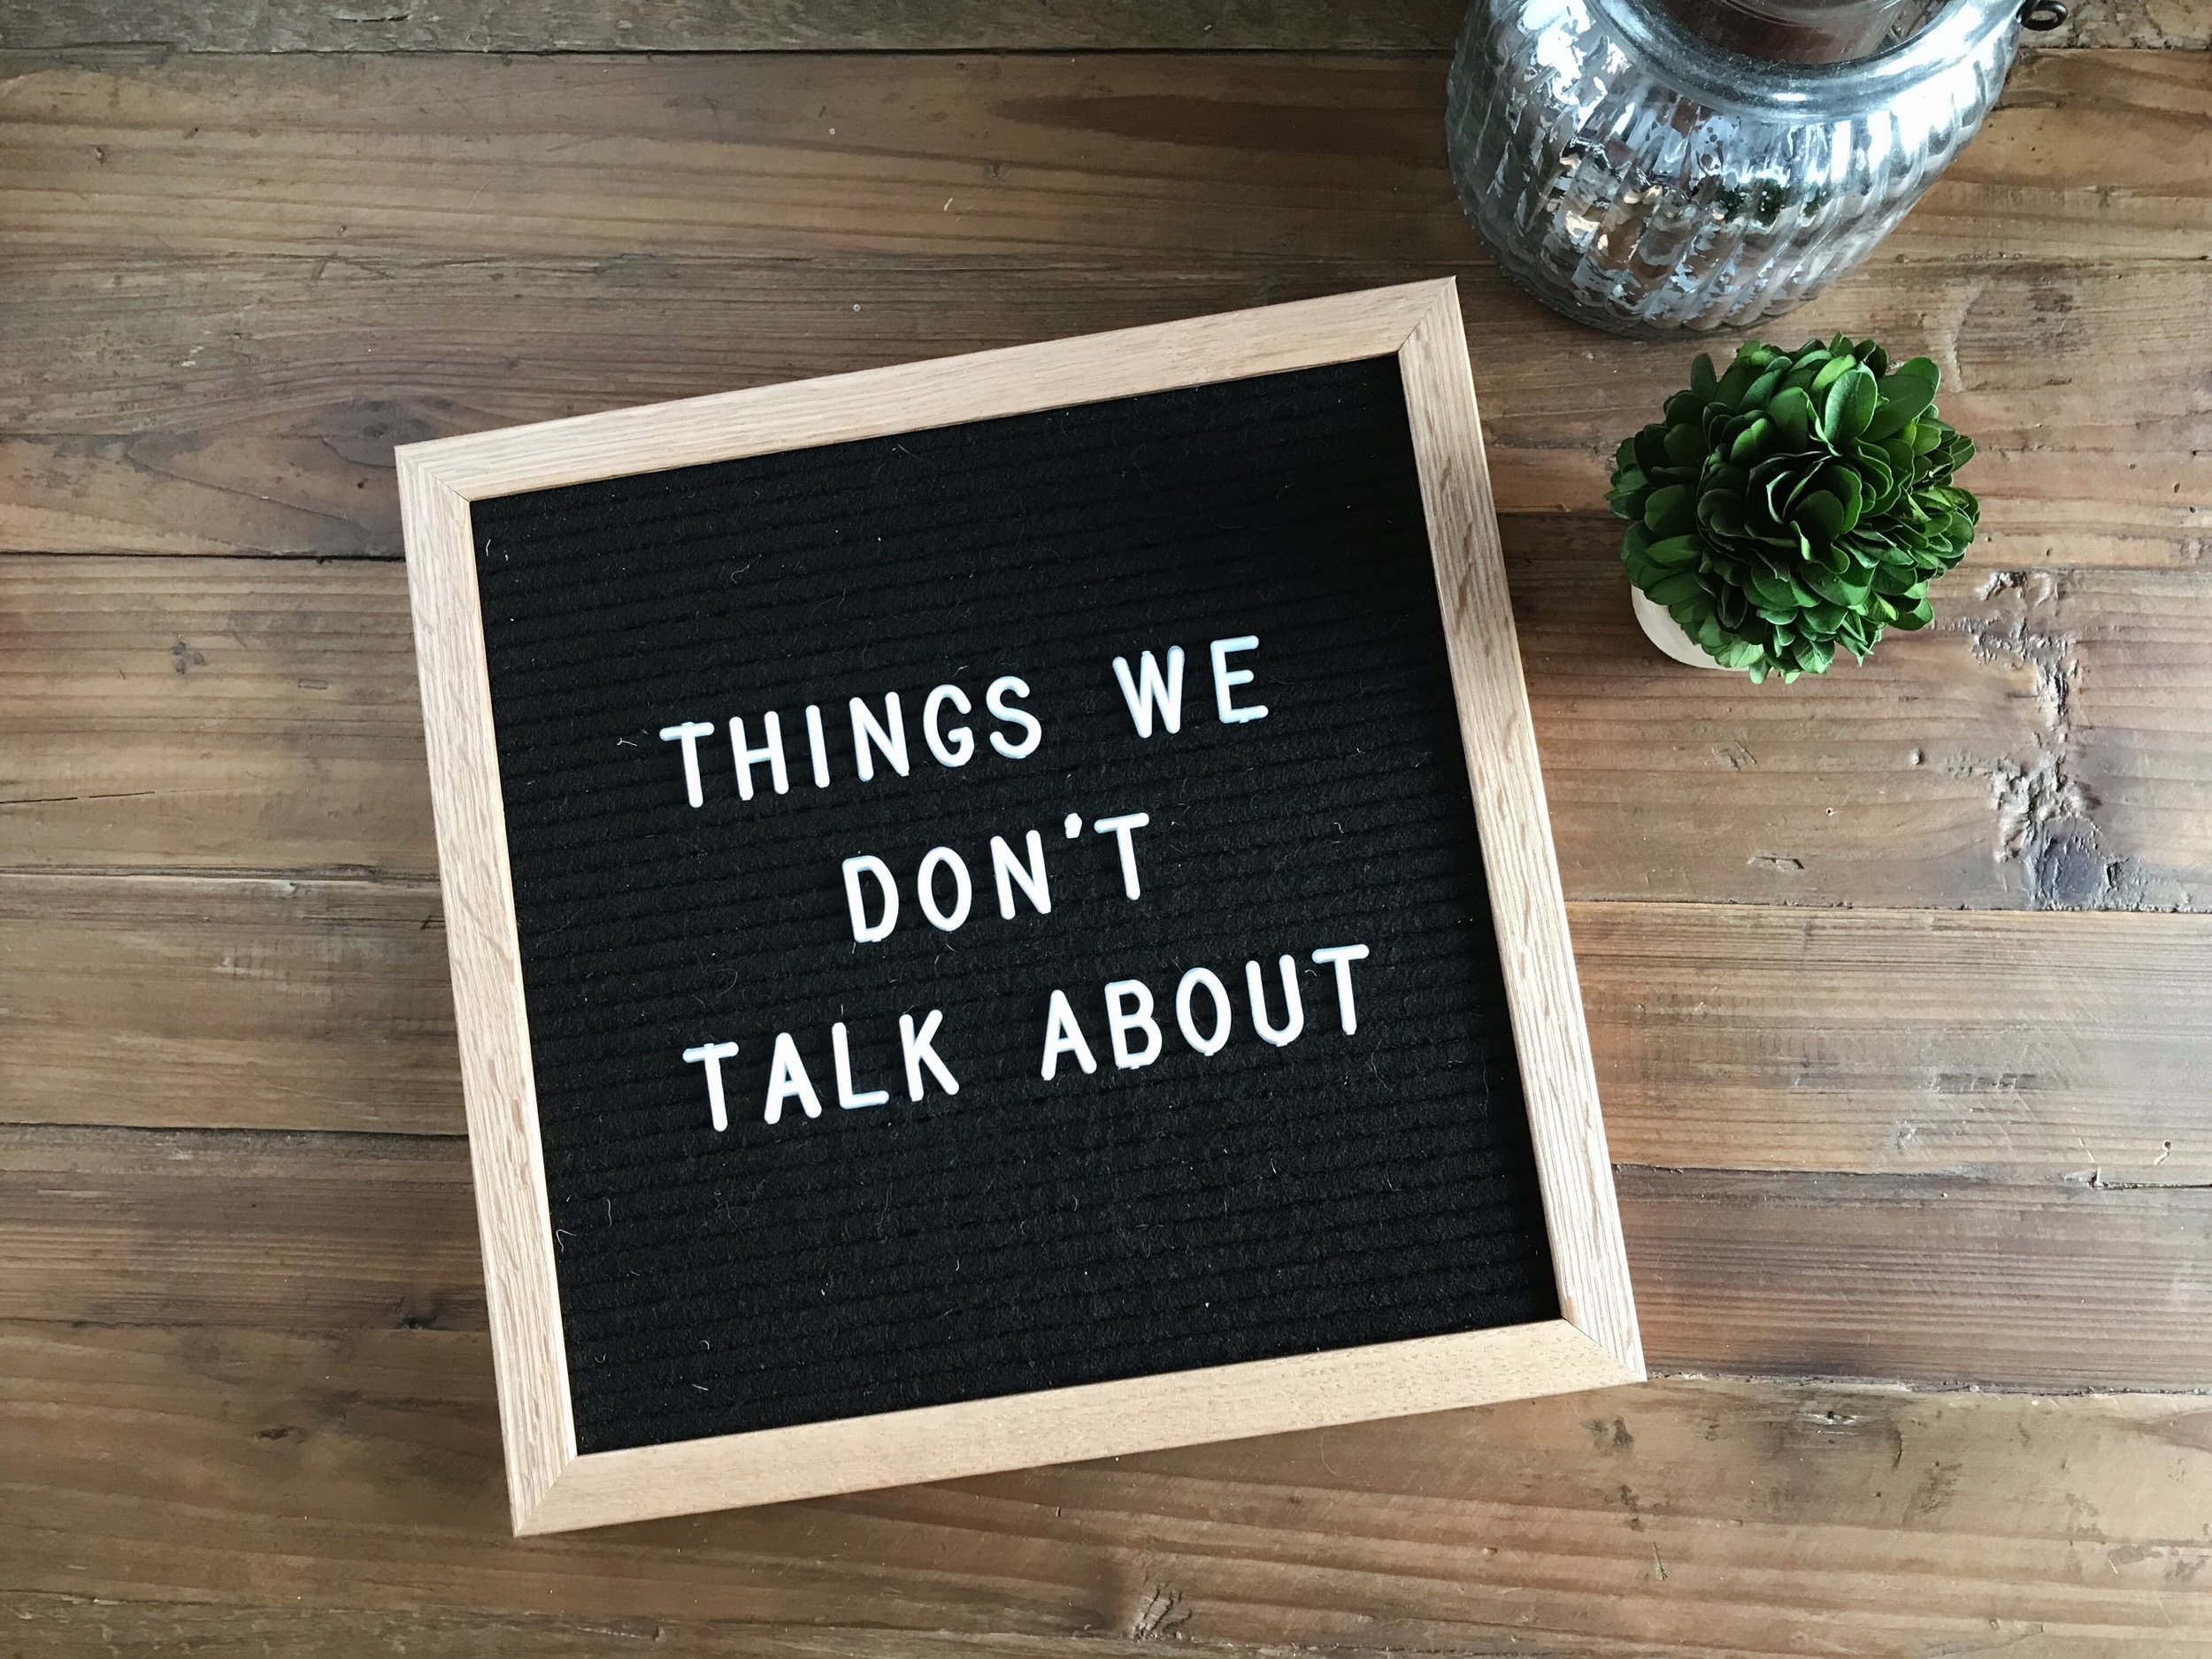 things we don't talk about by Mindy Larsen